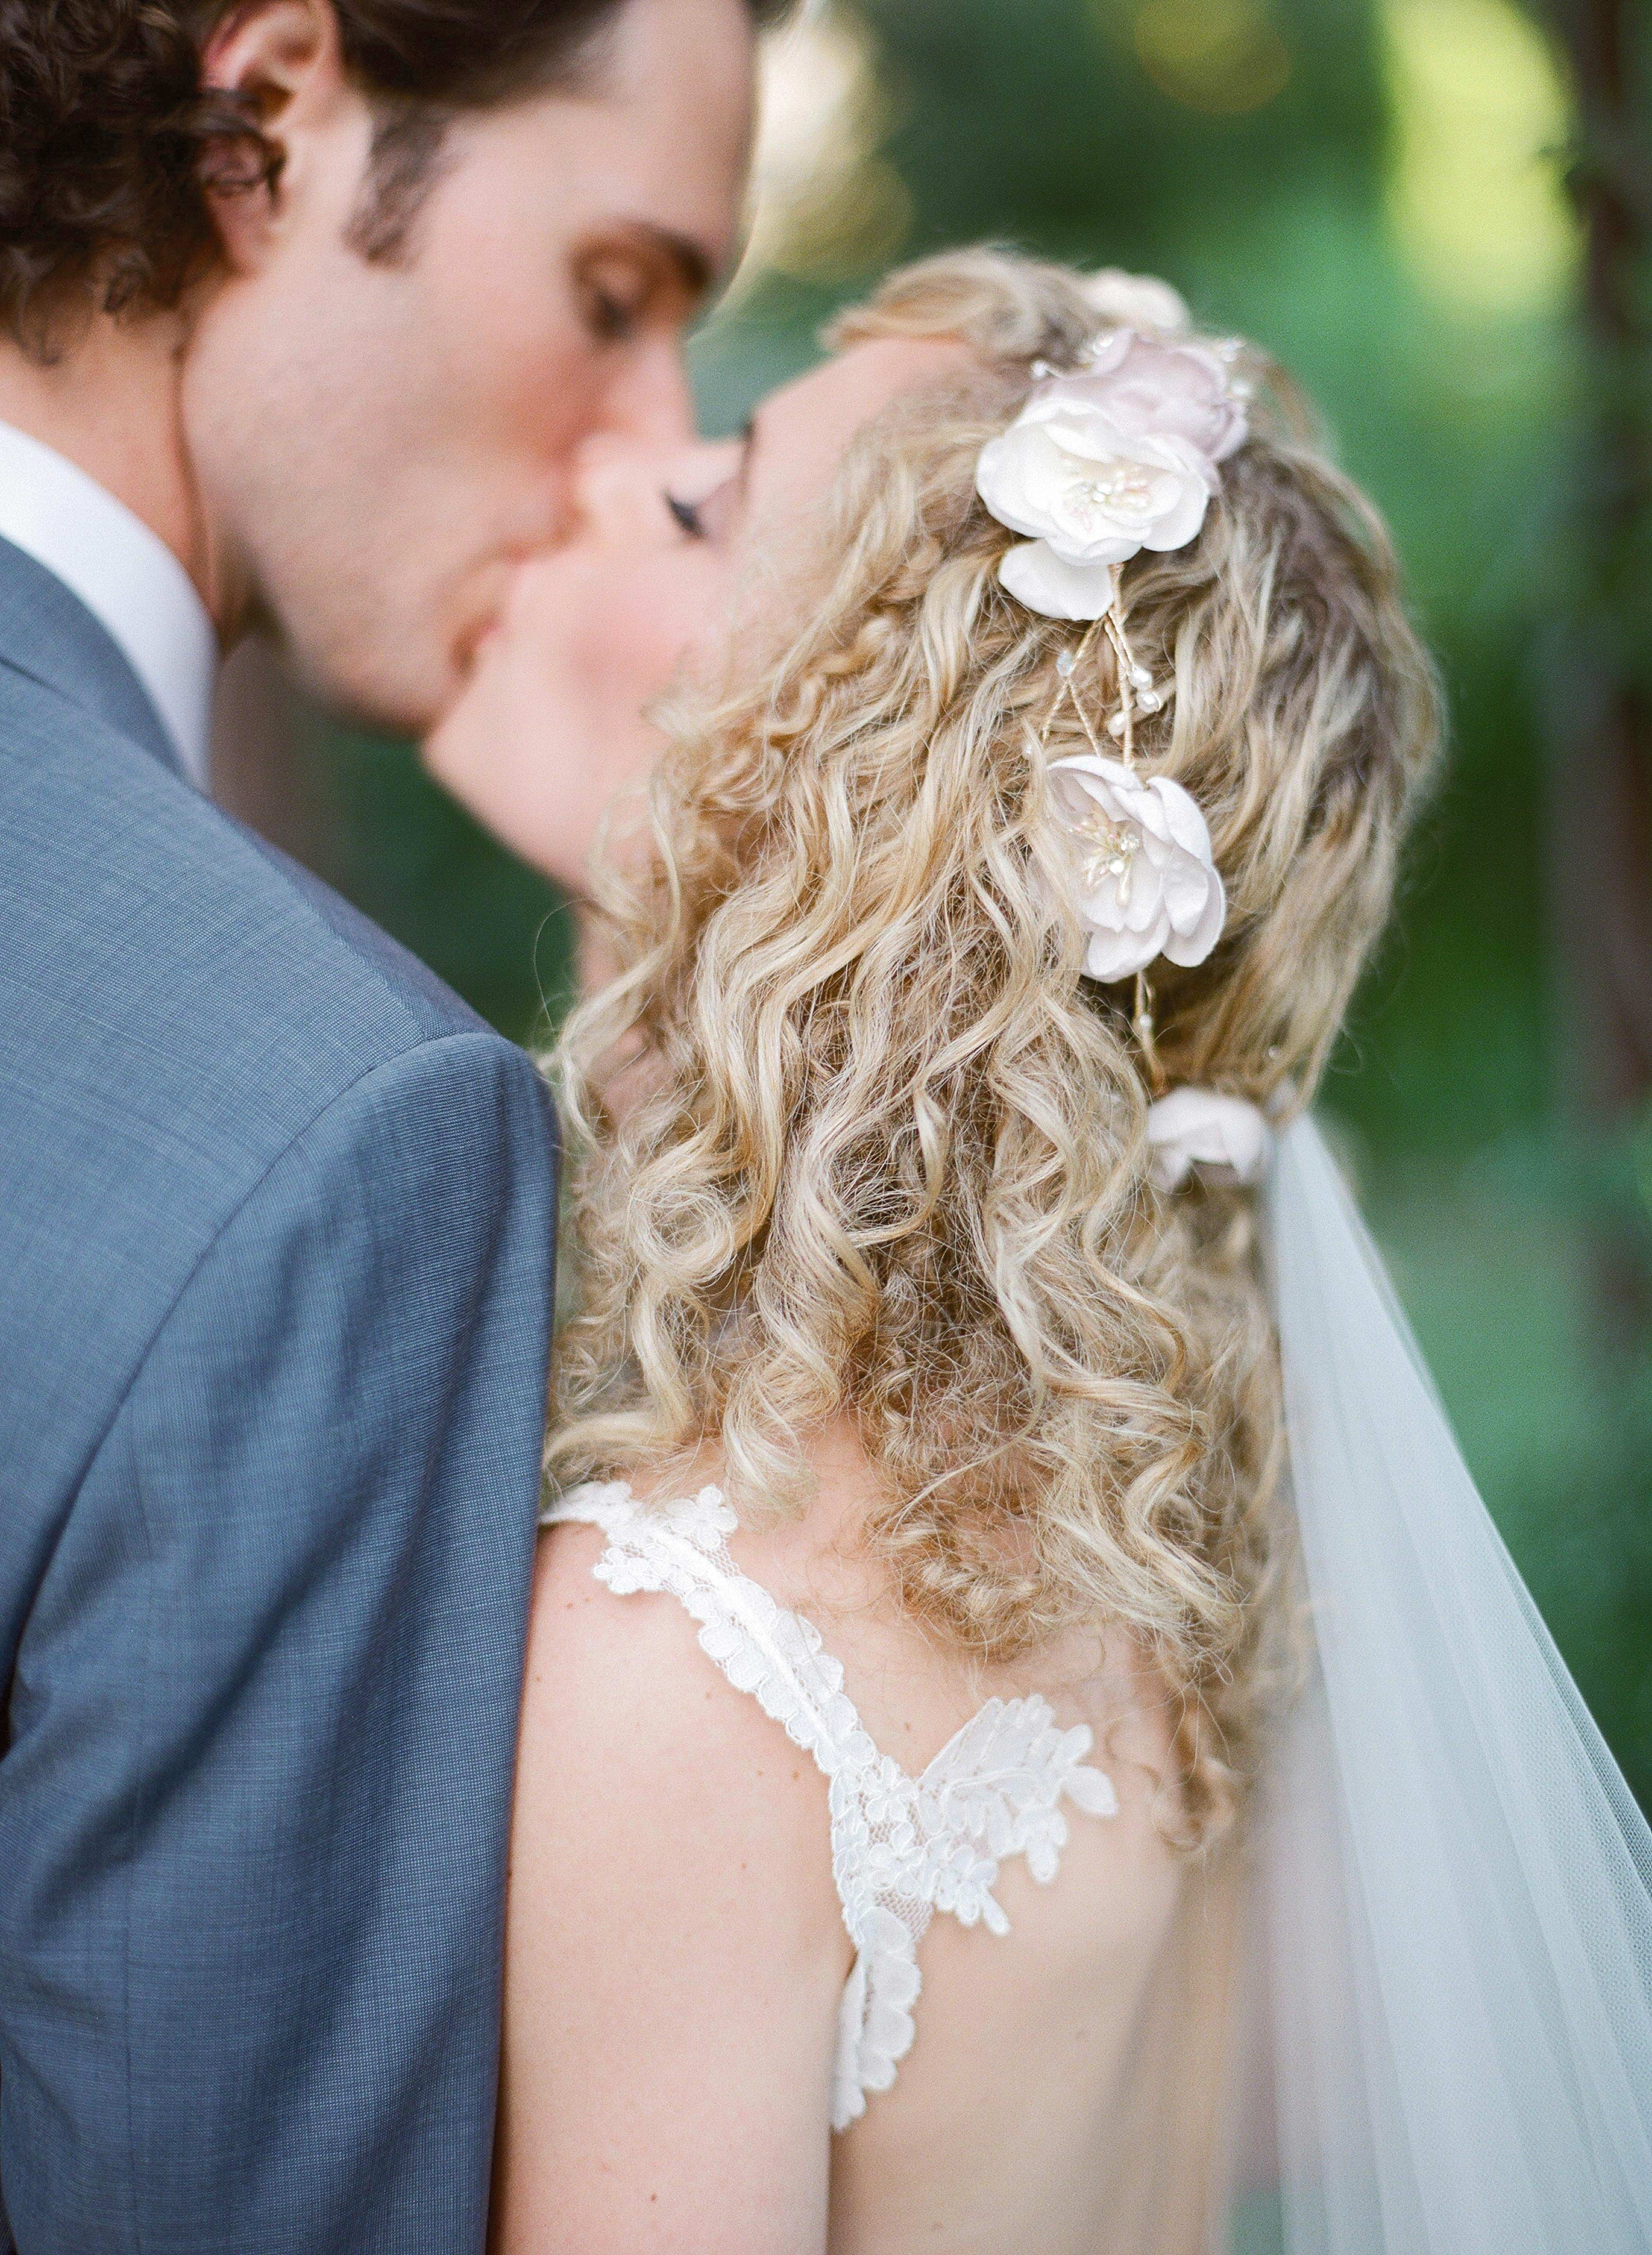 bride and groom's kiss